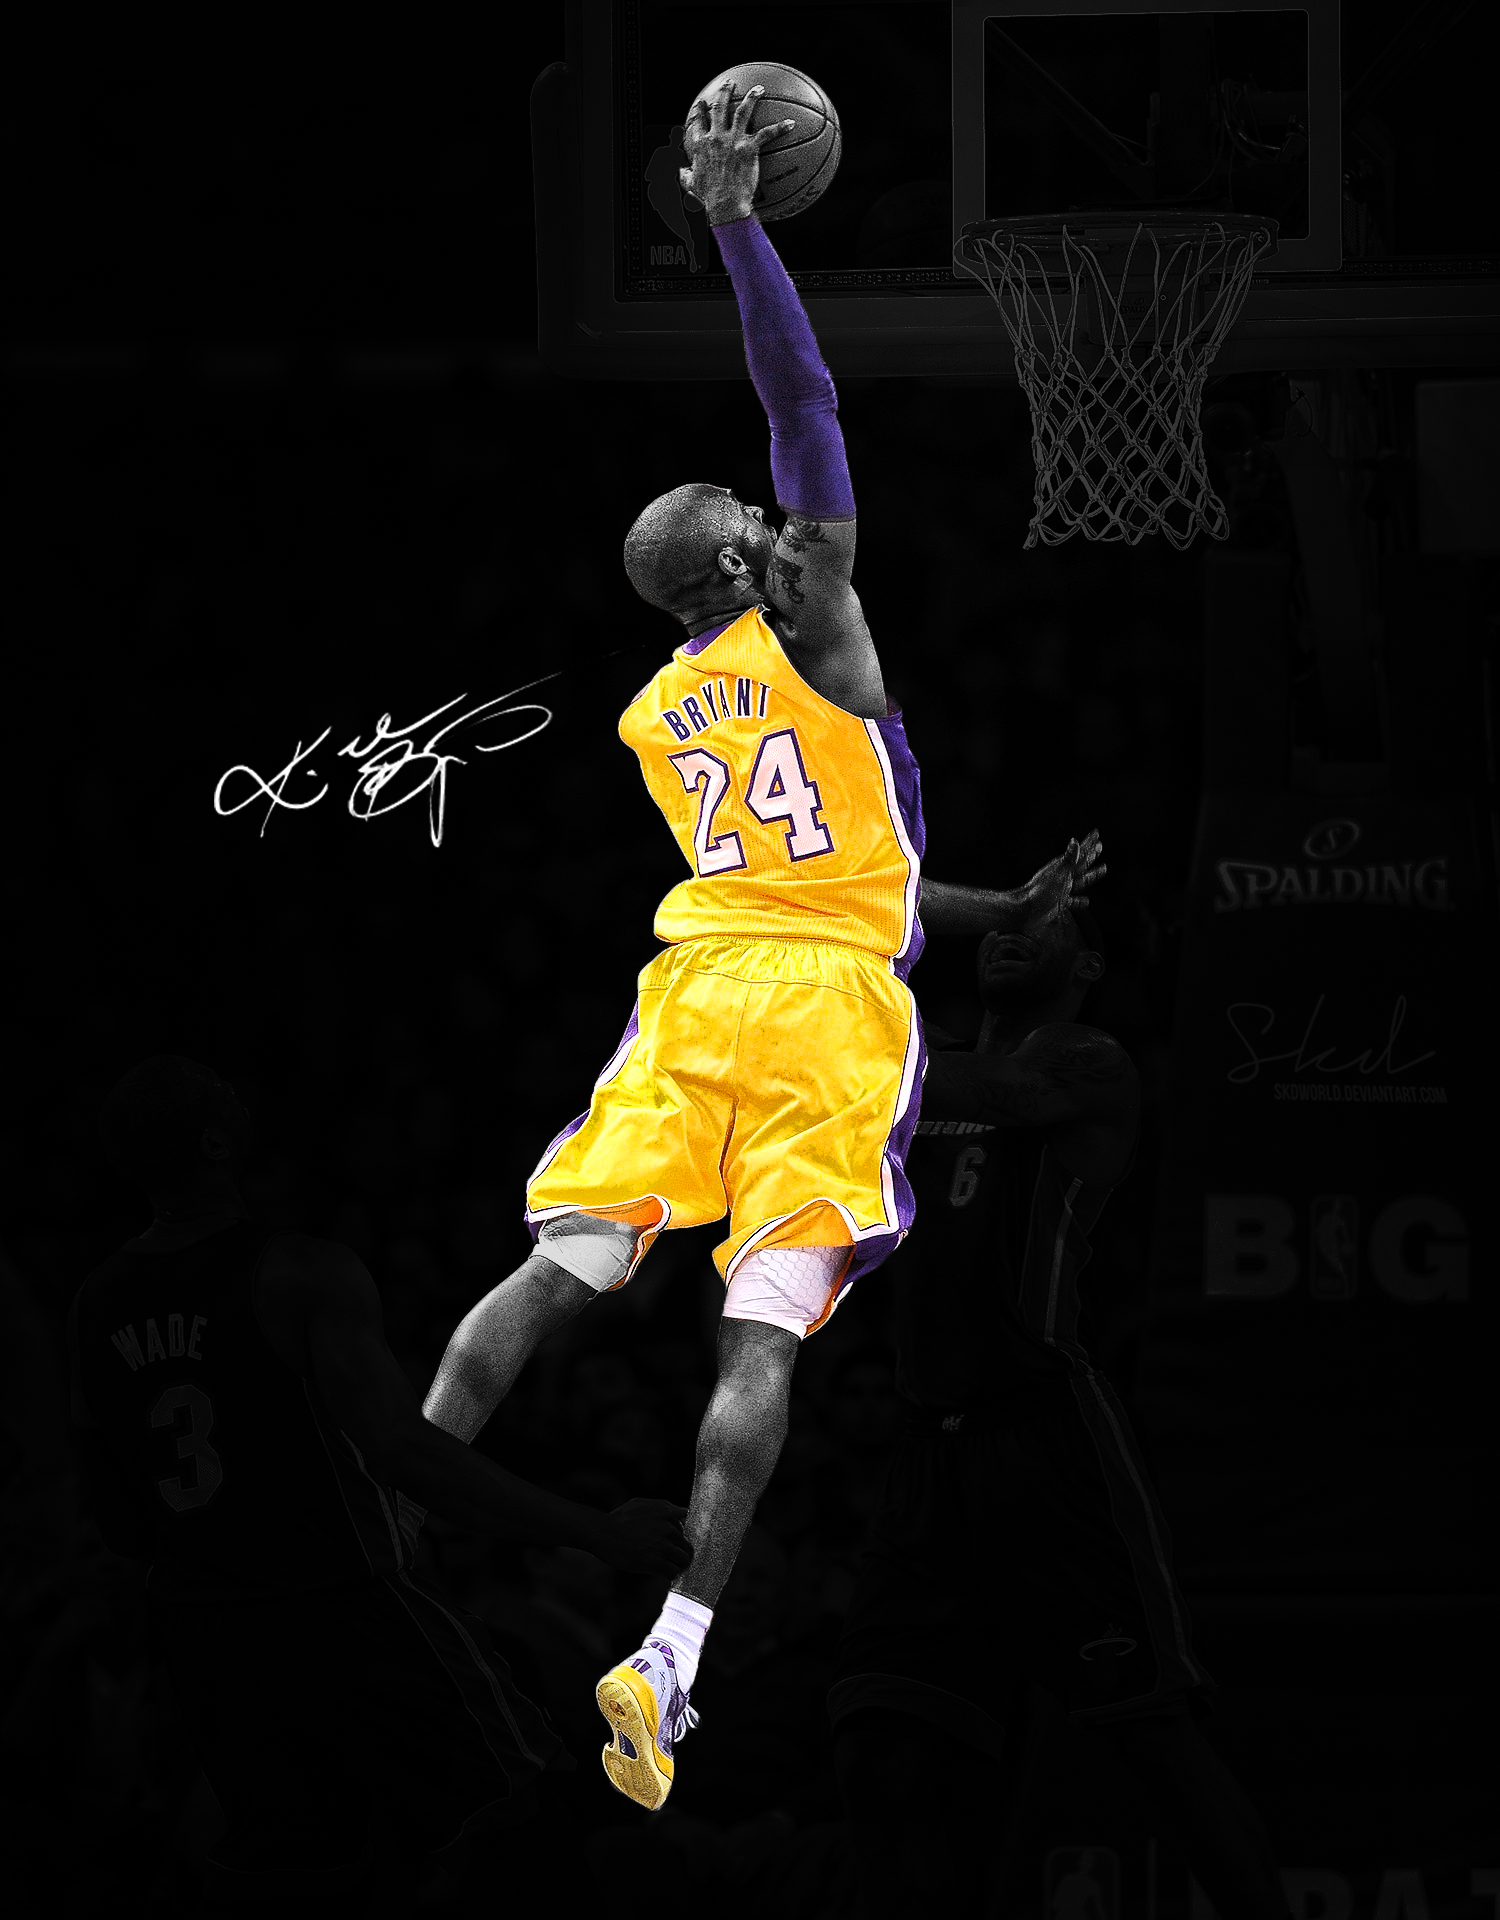 Kobe Bryant Dunk On Lebron James Wallpapers Hd Resolution Is Cool 1500x1920